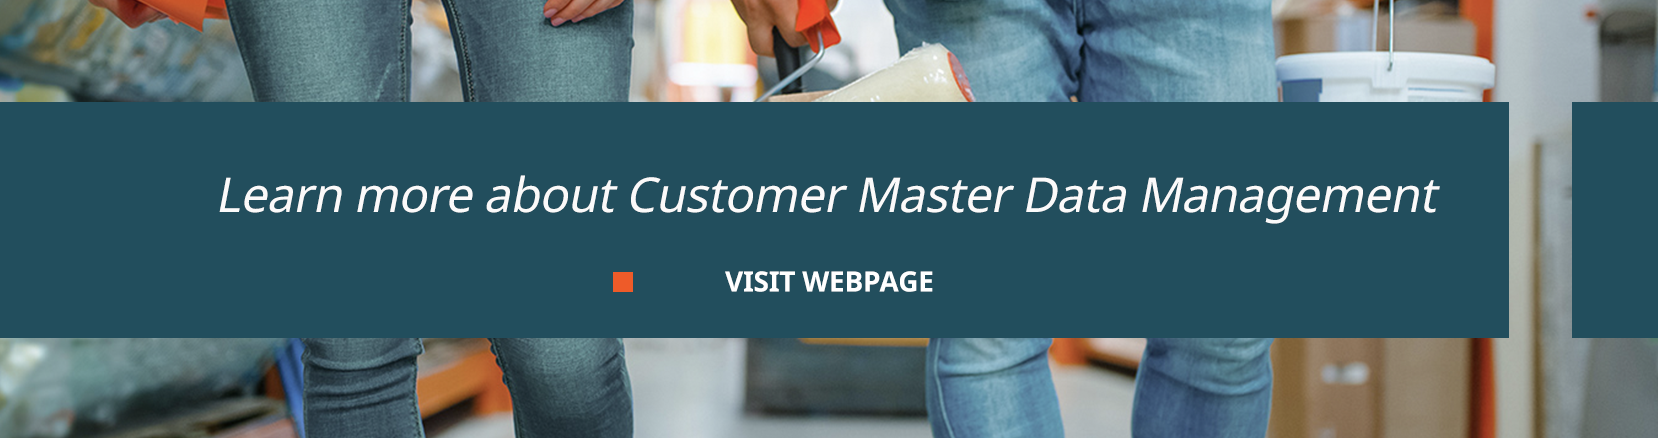 learn more about customer master data management